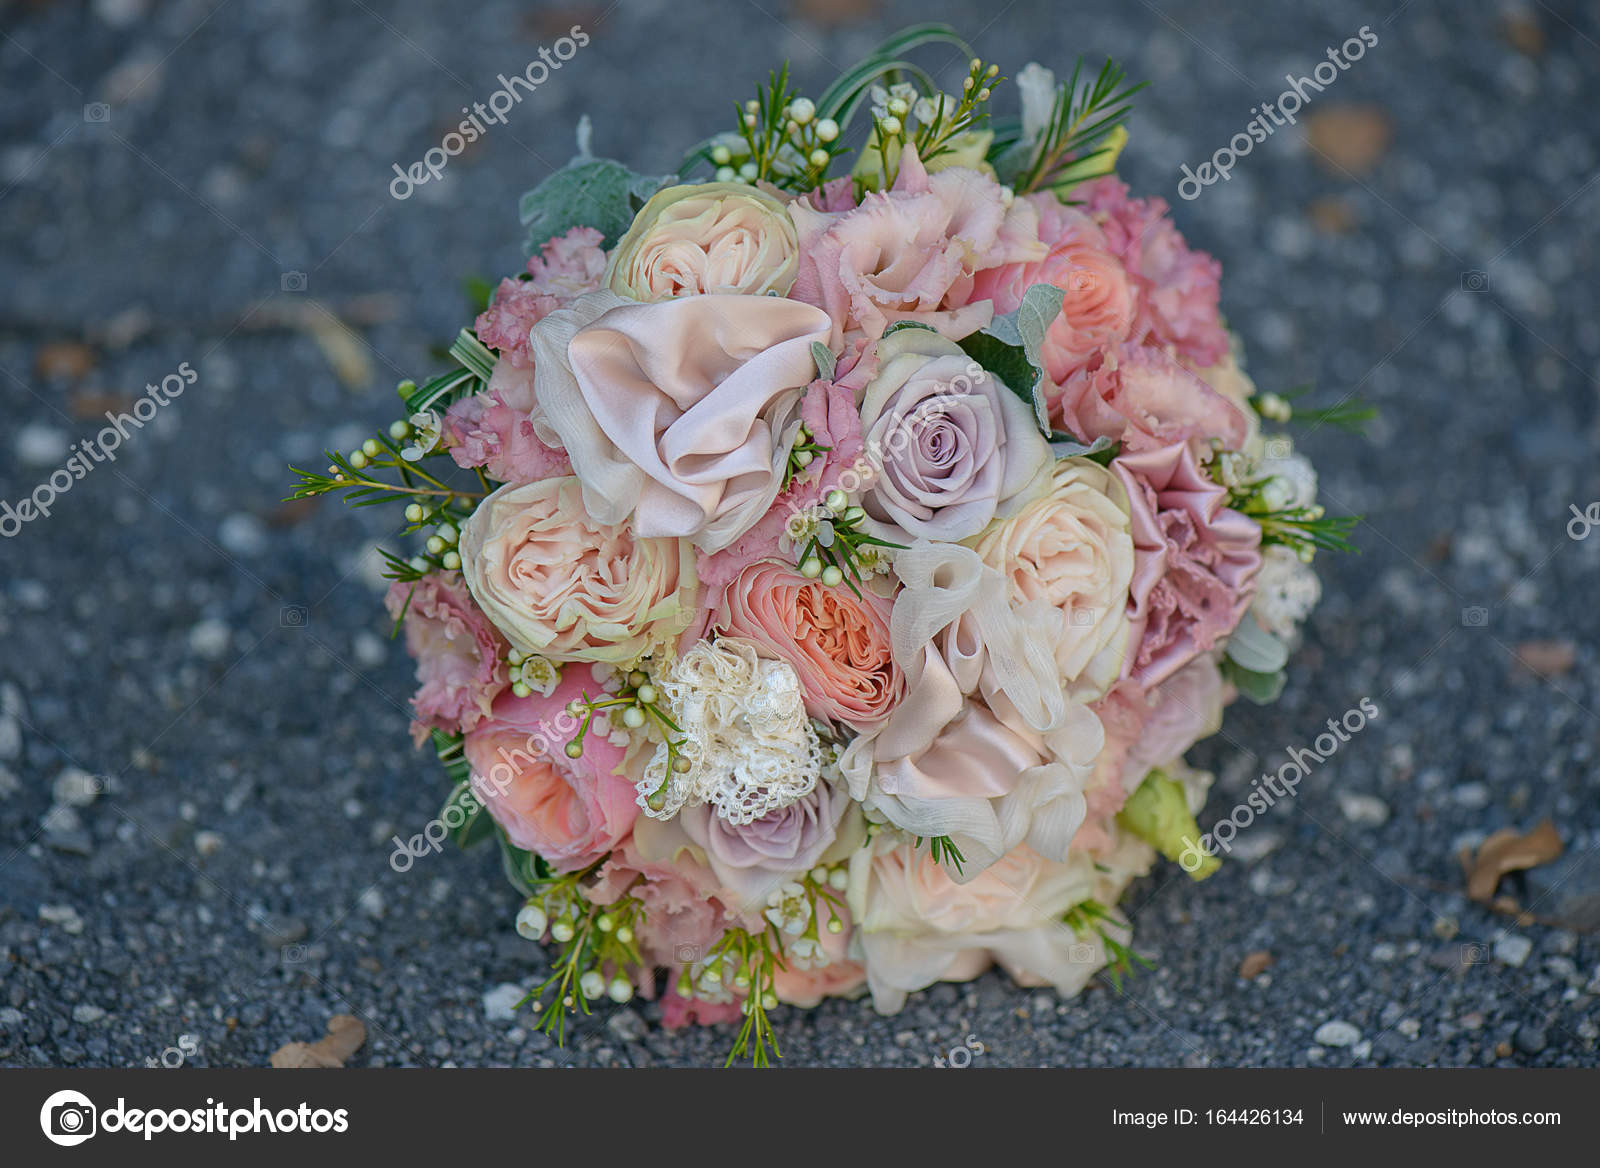 Roses Peonies And Silk In A Delicate Pastel Dusky Pink Bridal